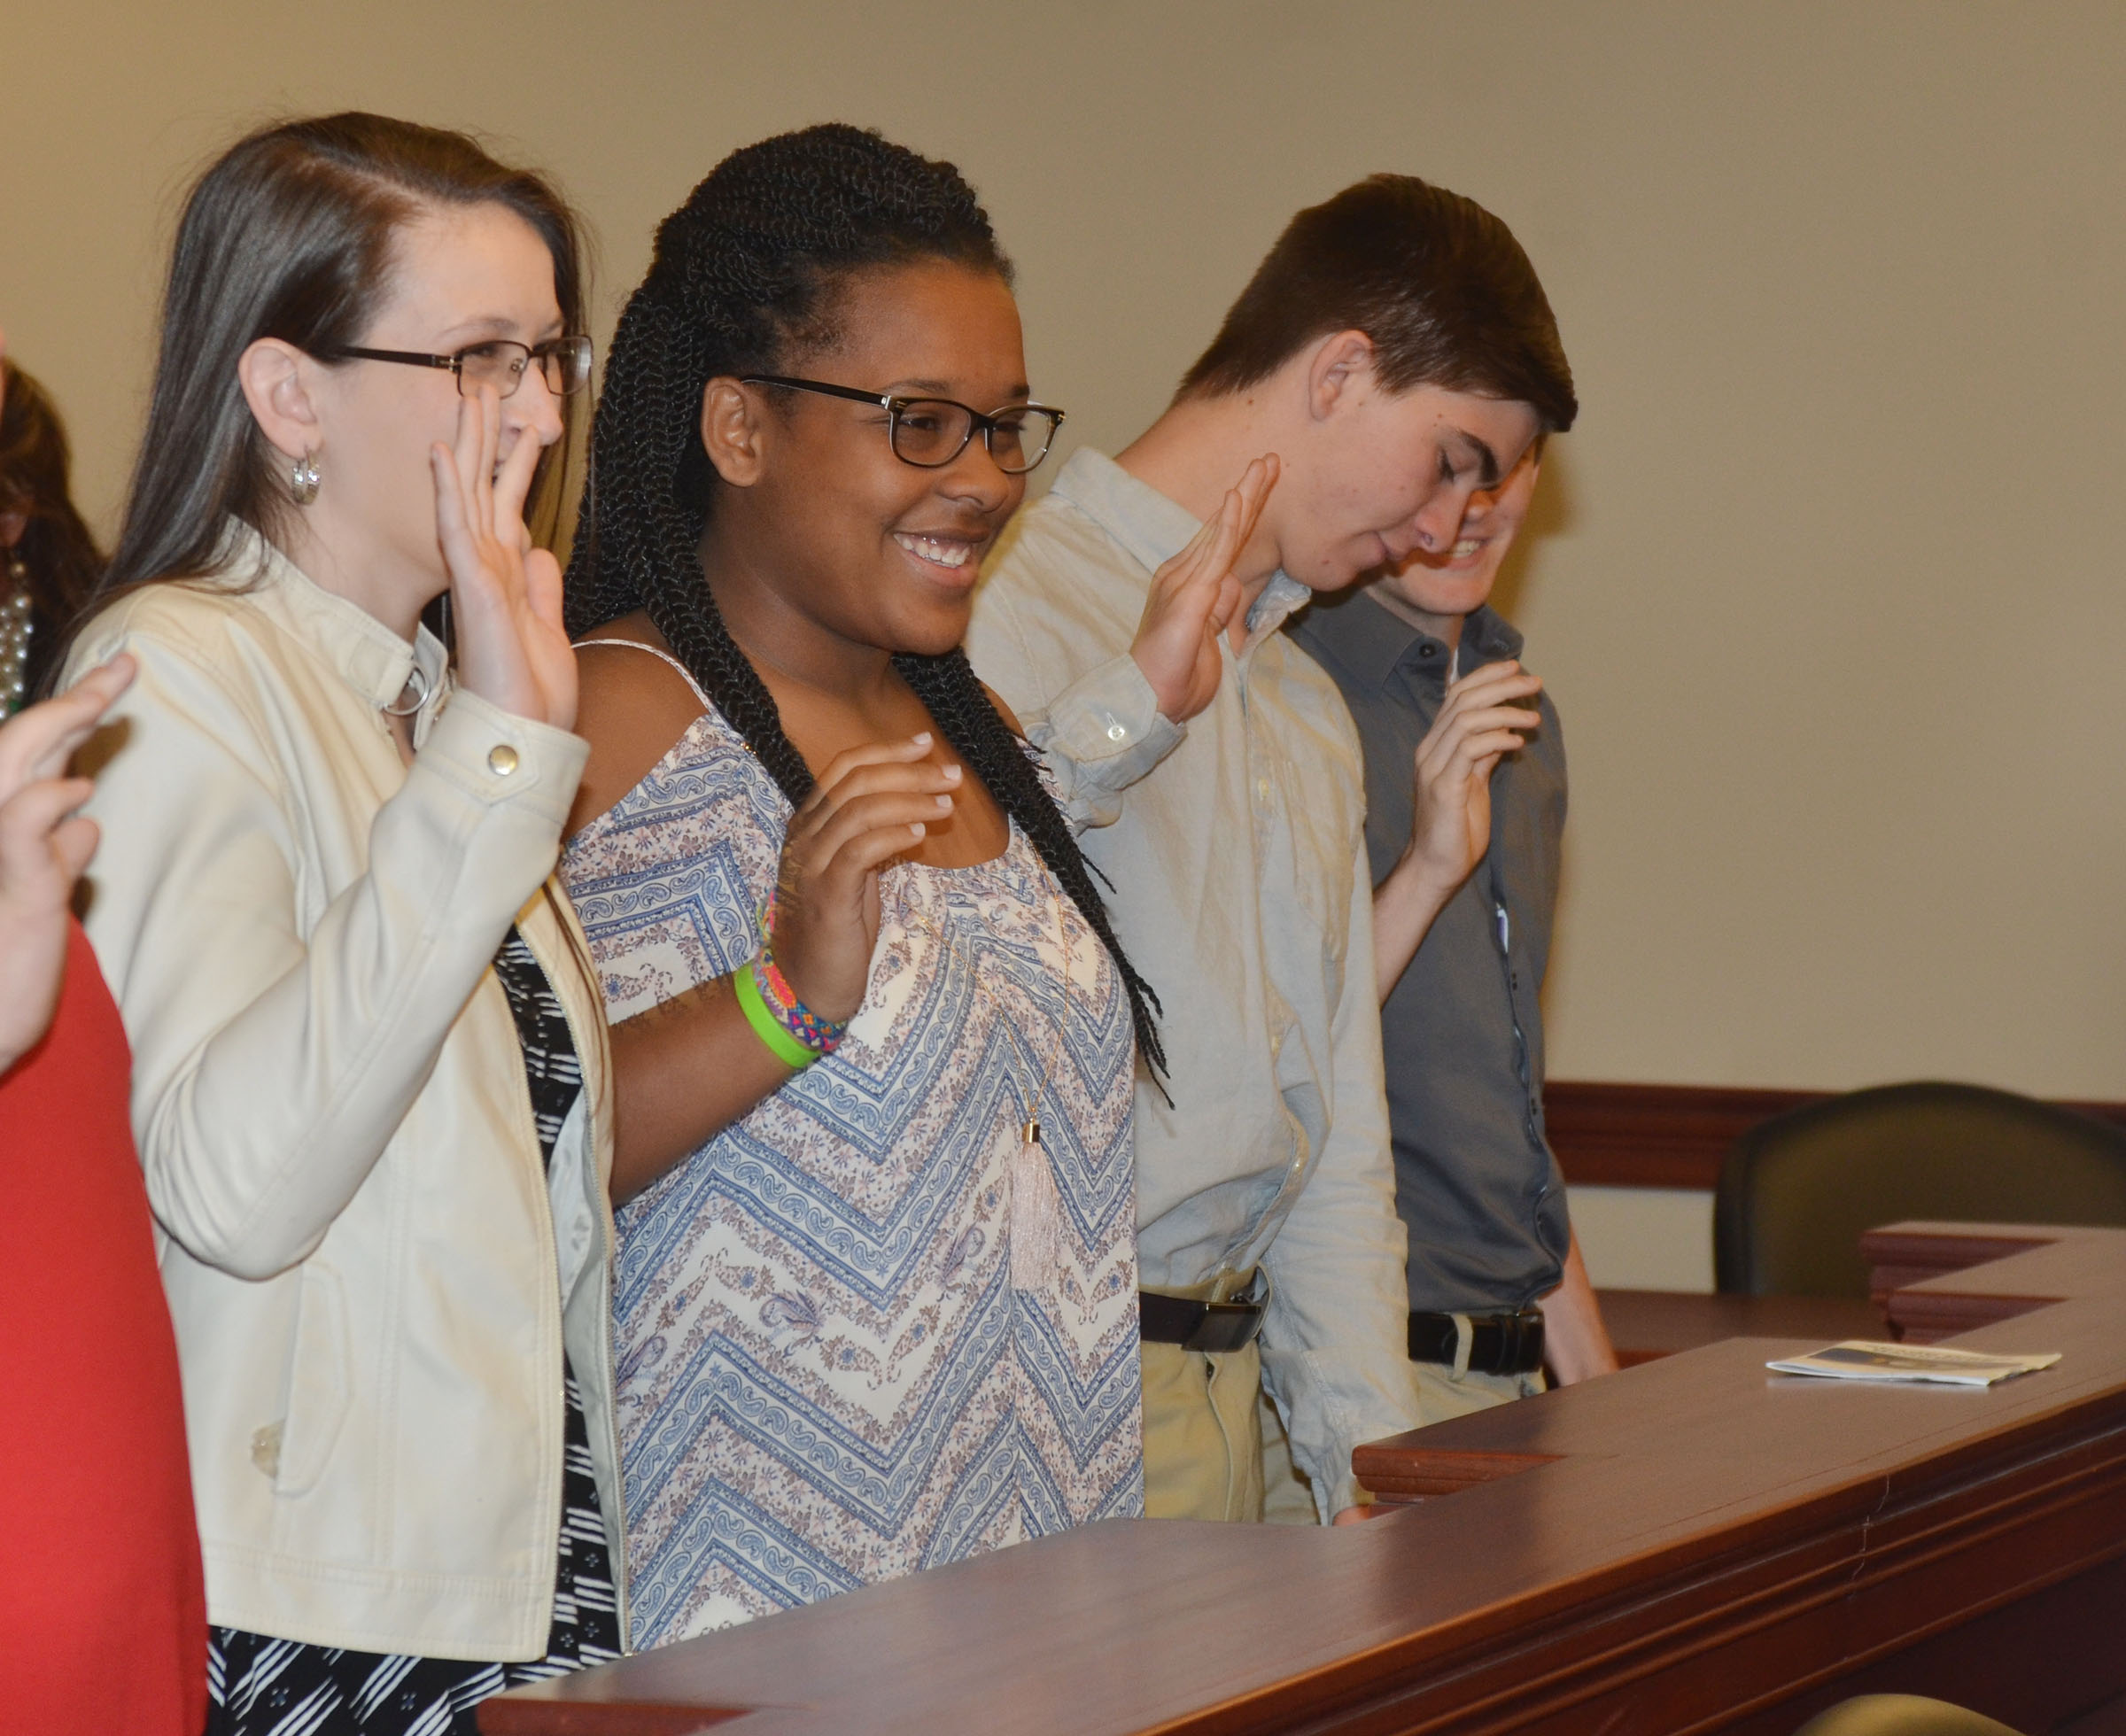 From left, CHS juniors Kimberly Harden, Kayla Young and Cass Kidwell are sworn in as jurors during the mock trial.